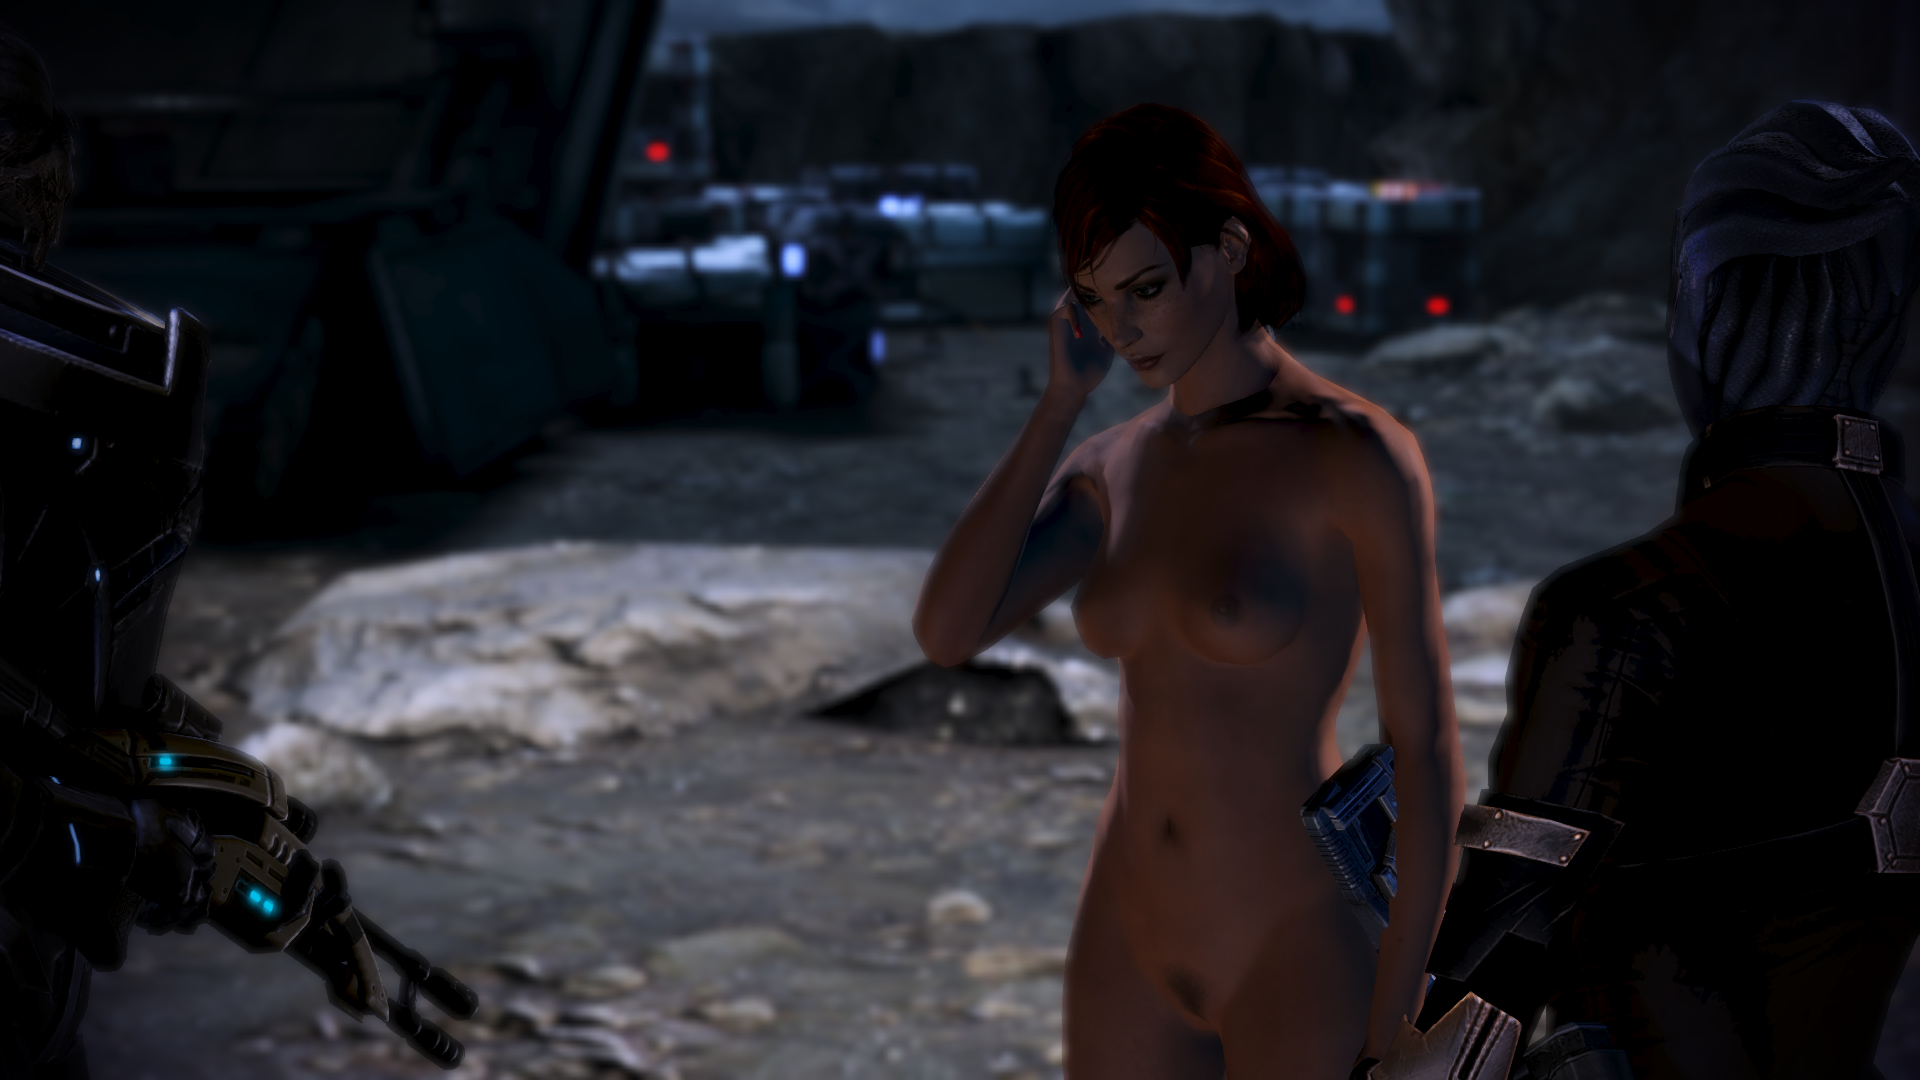 Mass effect sexy skins sex images